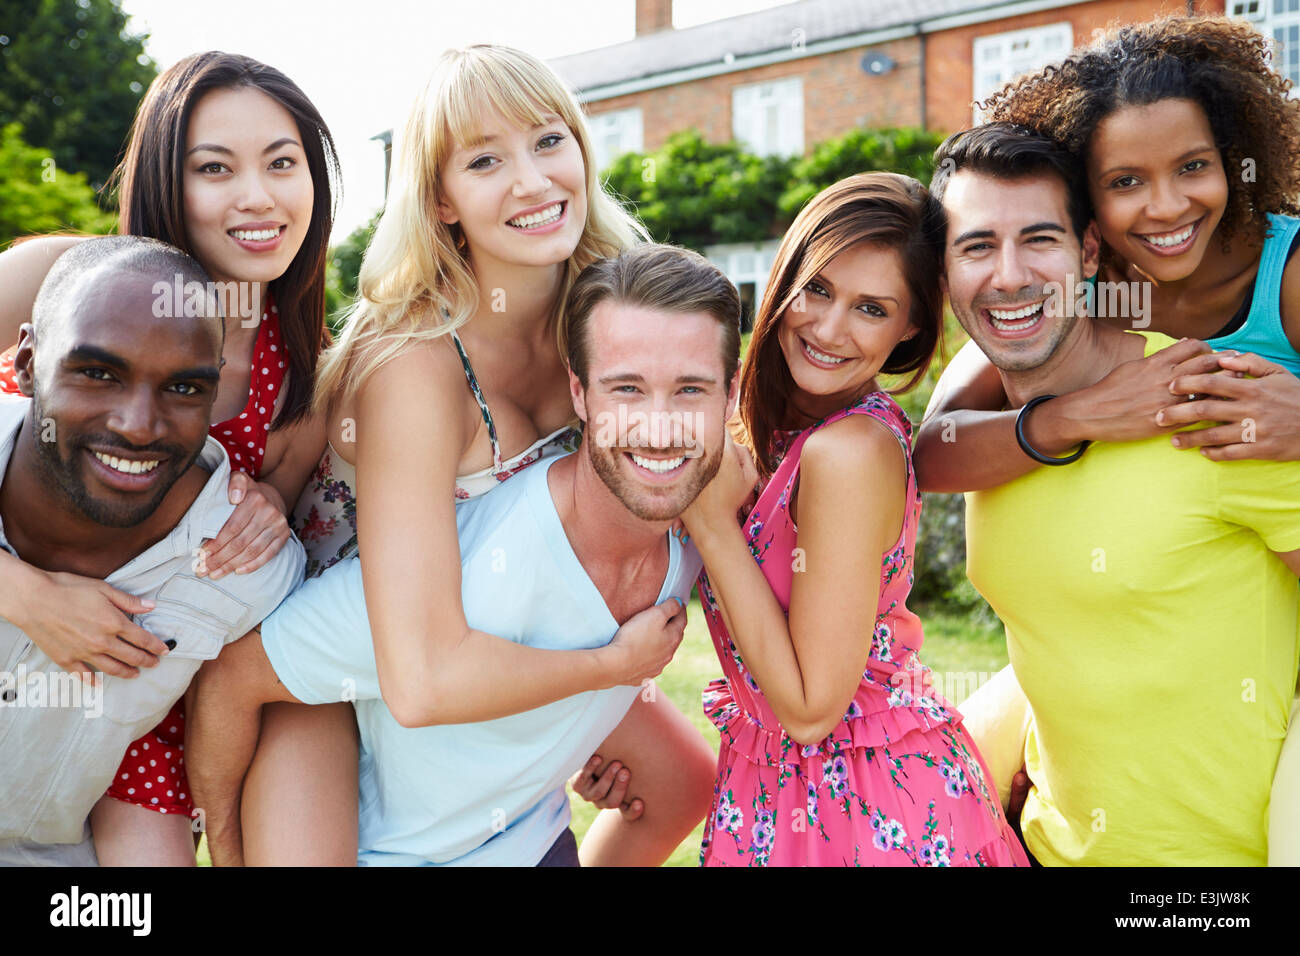 Portrait Of Friends Relaxing In Summer Garden Together - Stock Image